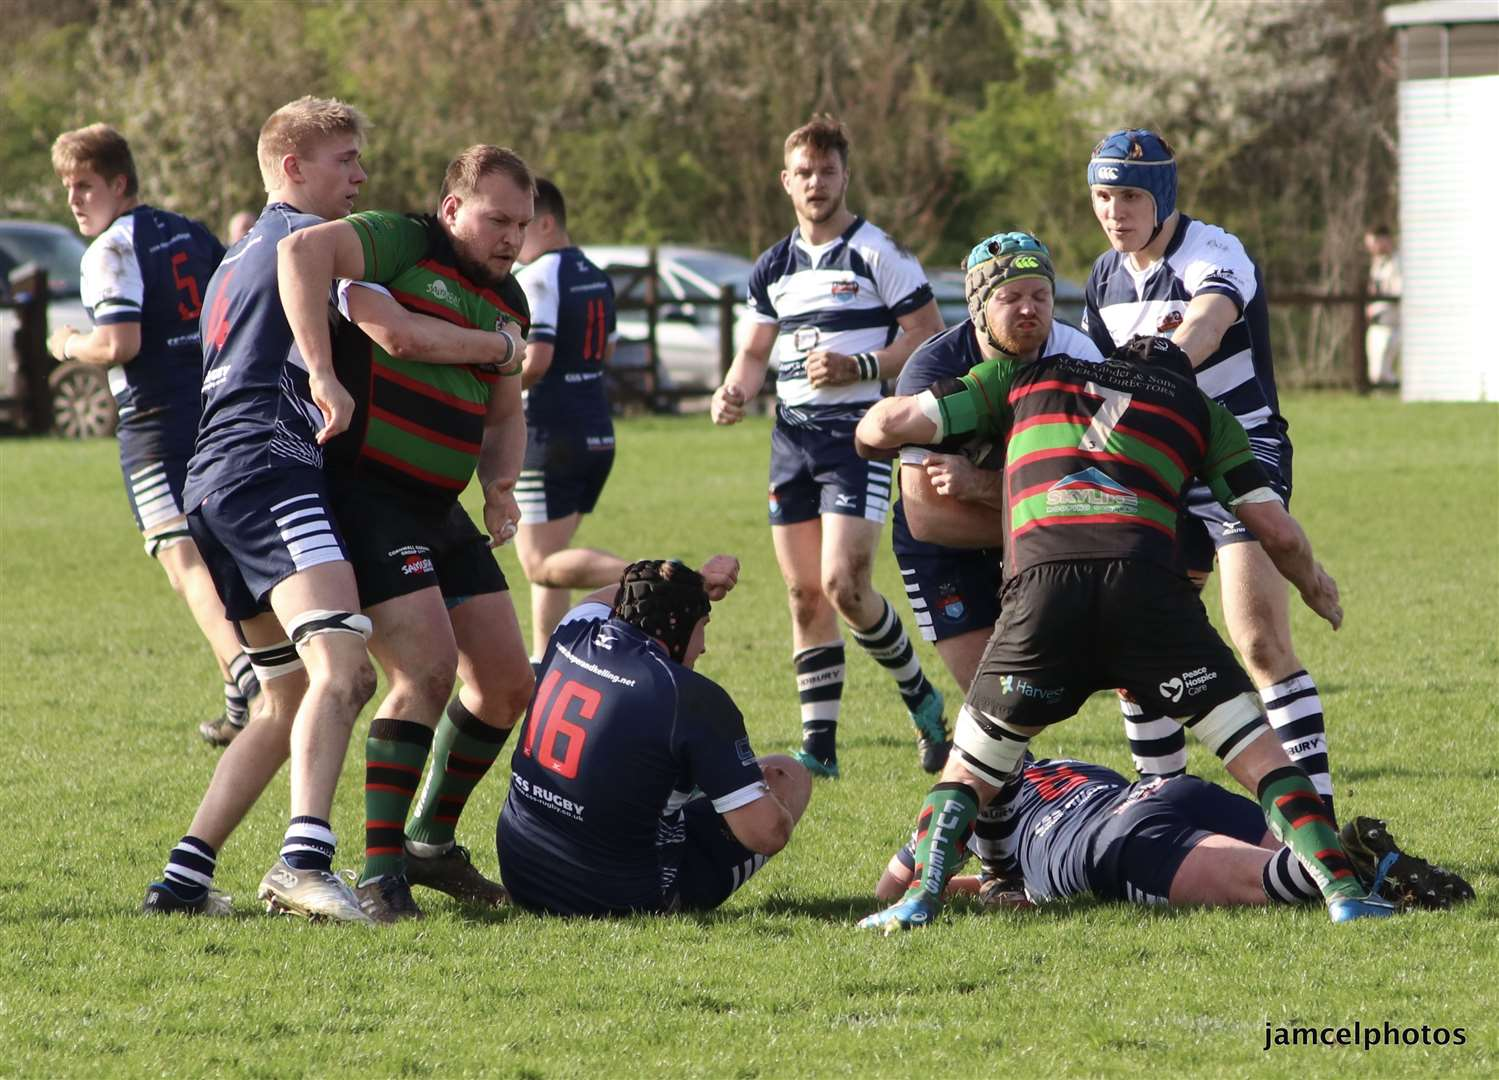 Match action from Sudbury v Fullerians Picture: Jen McElroy (8037233)